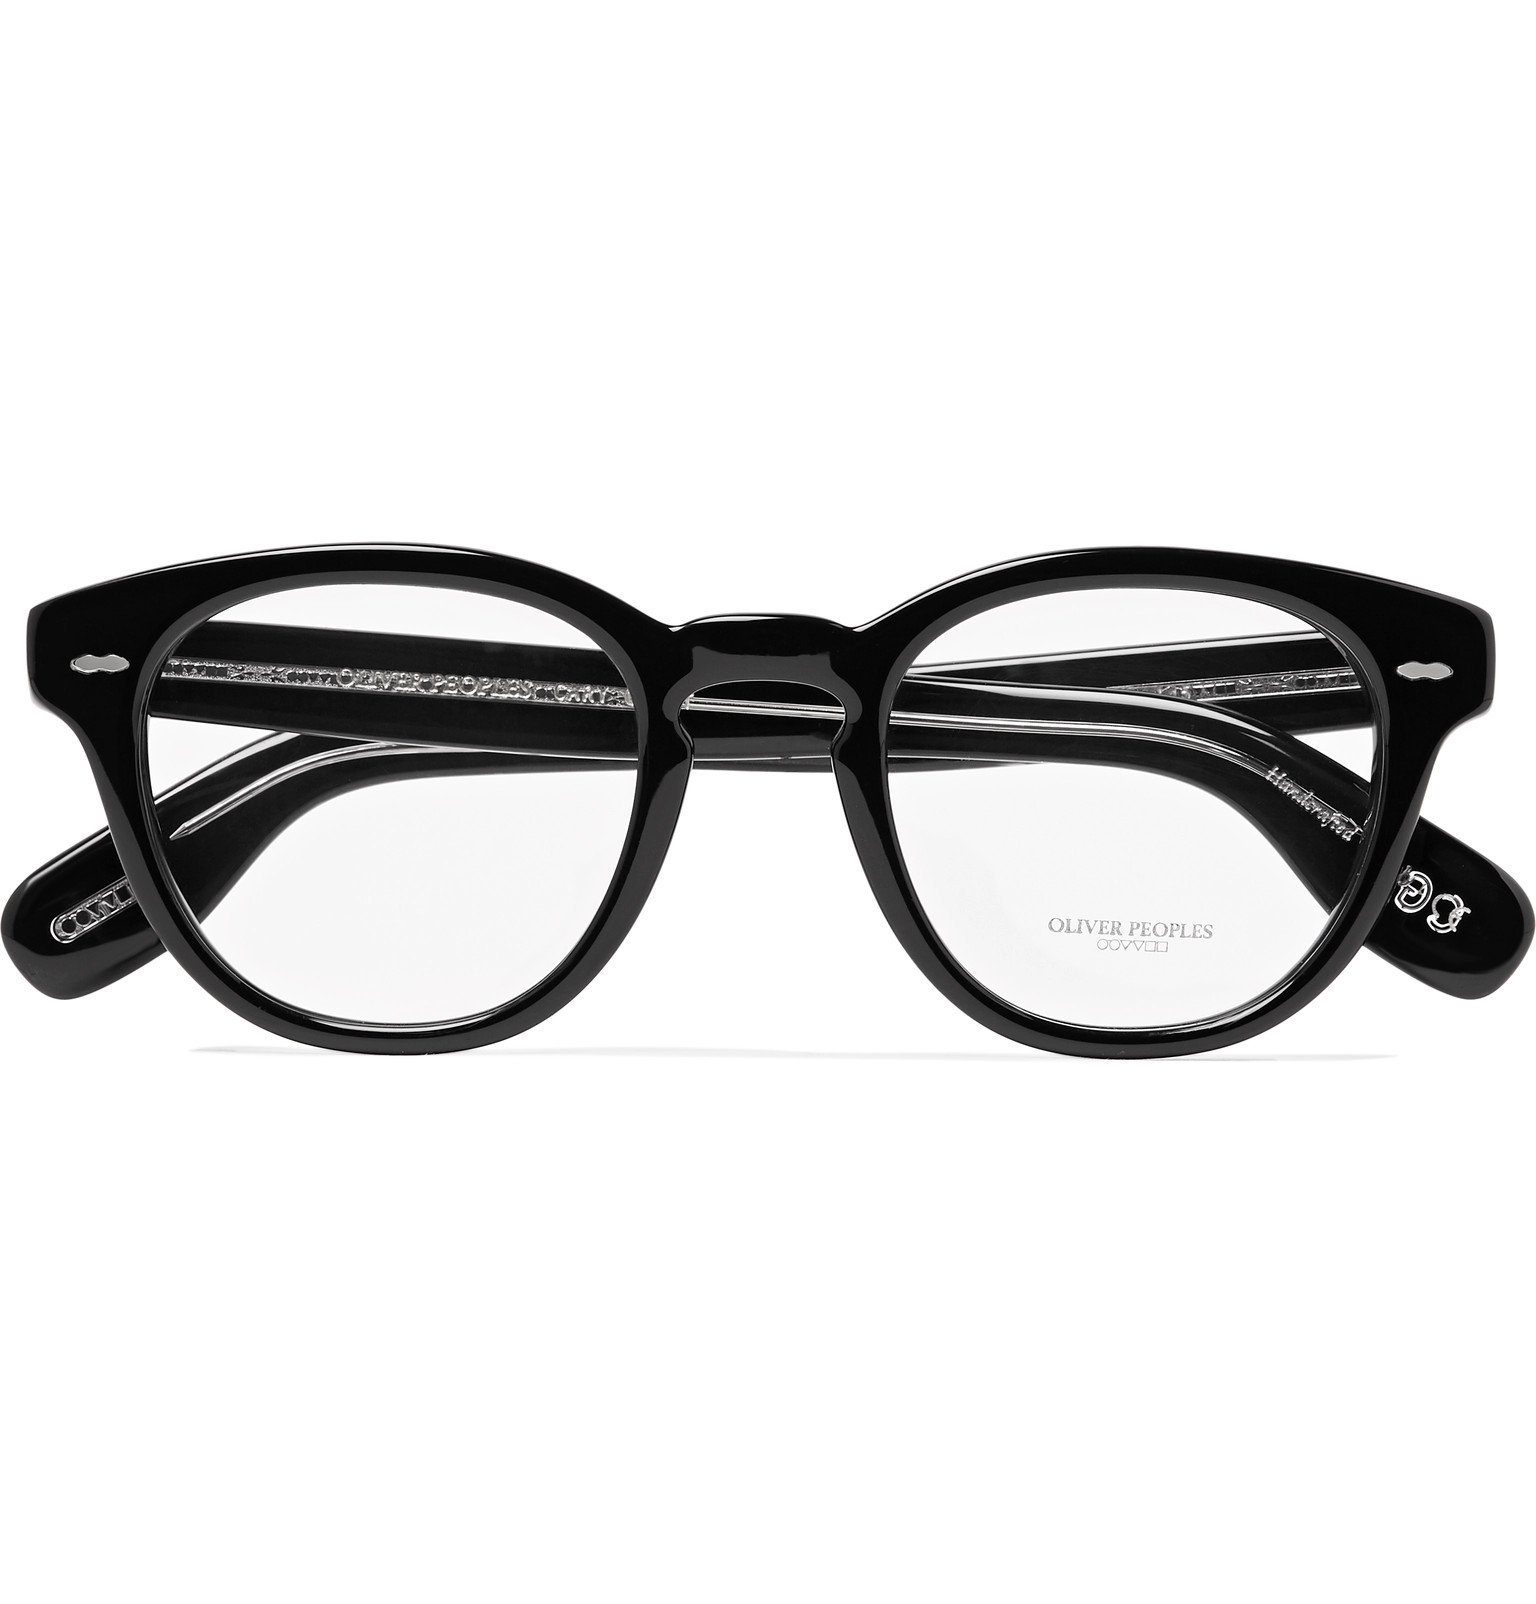 Oliver Peoples - Cary Grant Round-Frame Acetate Optical Glasses - Black